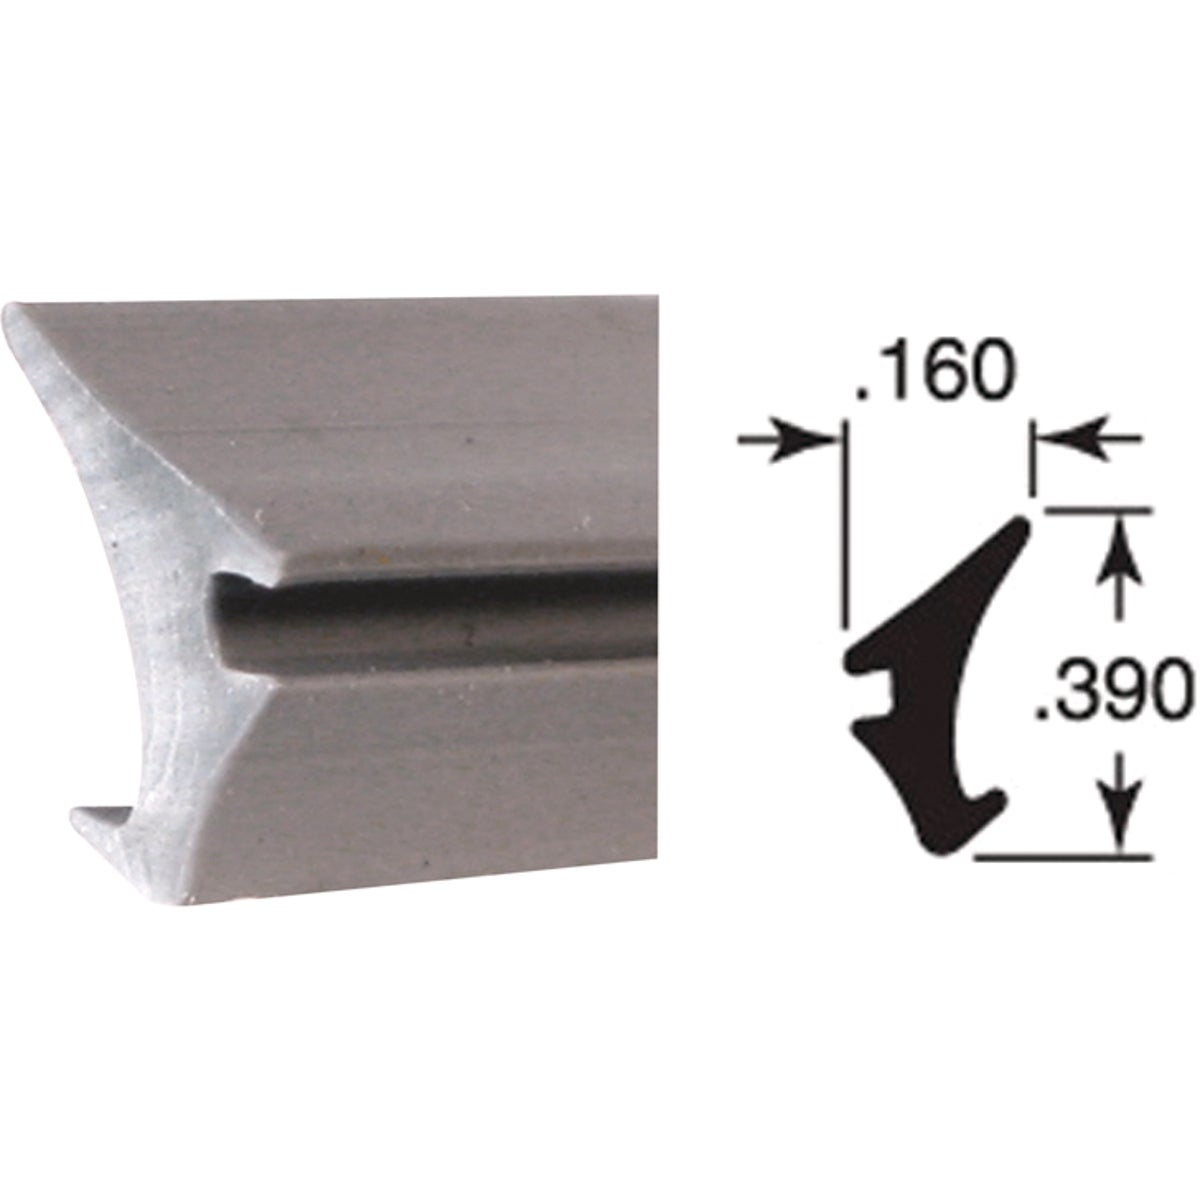 200' GRAY GLASS SPLINE - P7774 by Prime Line Products